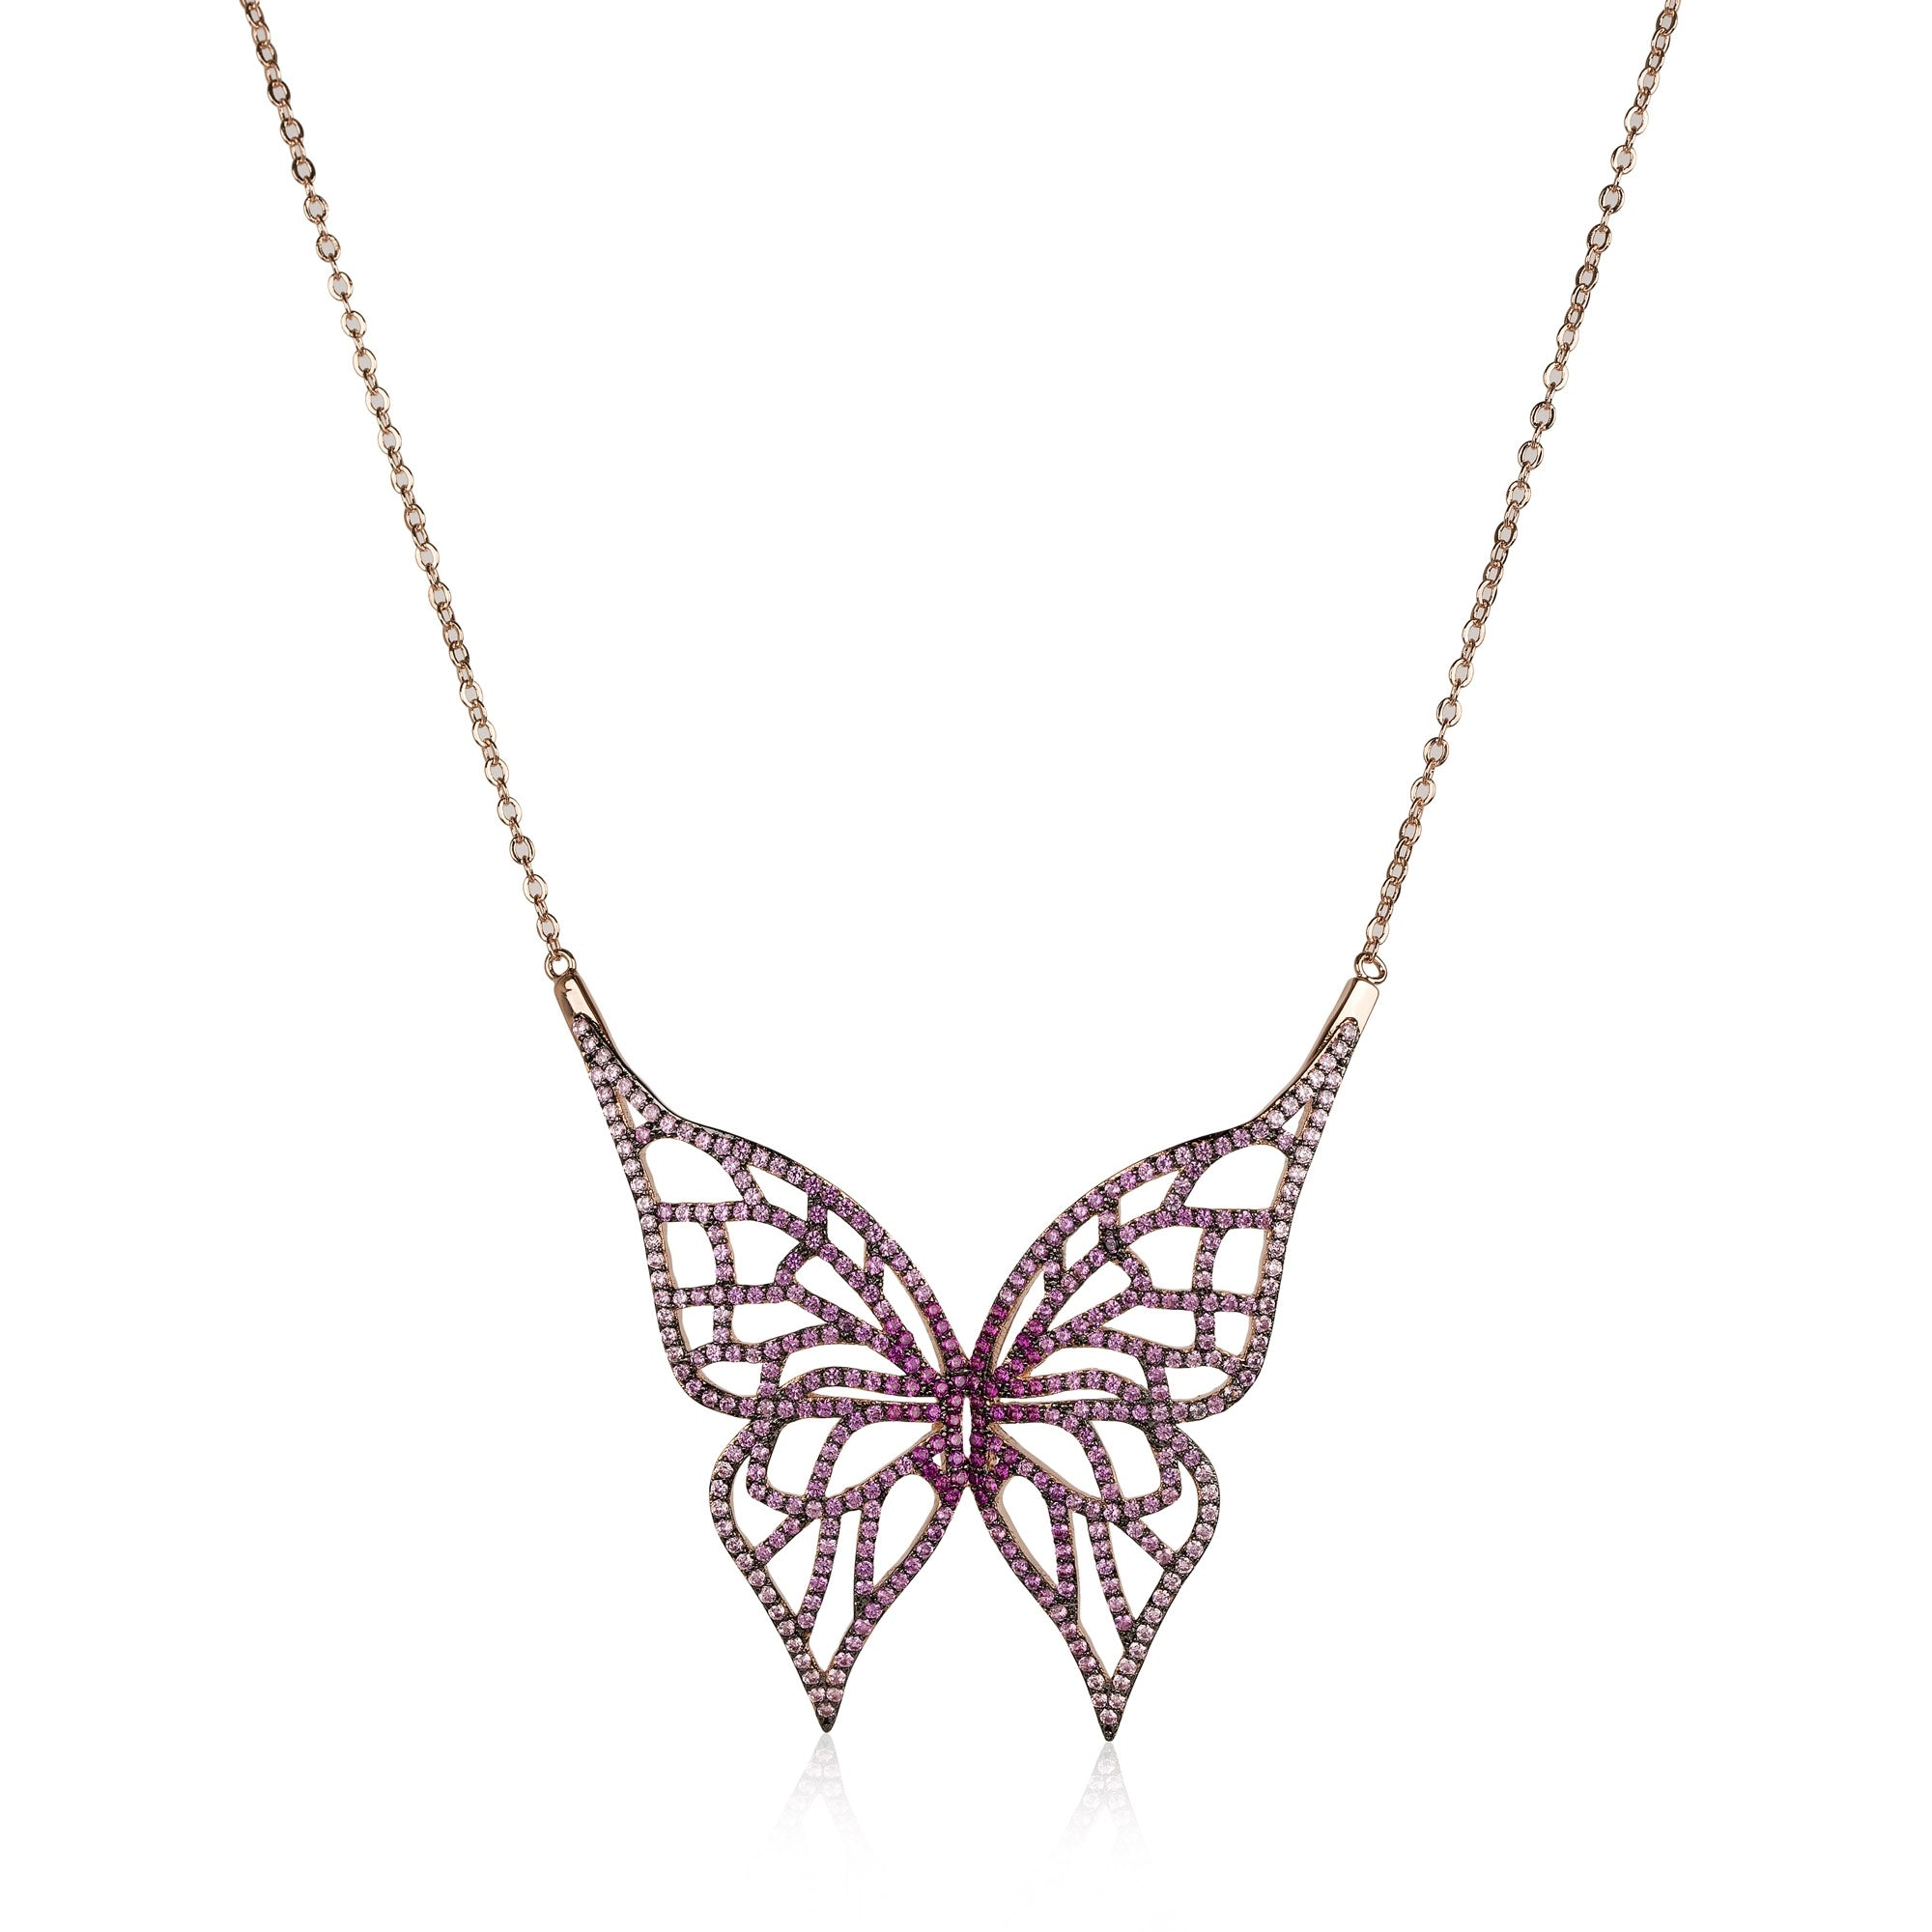 Dazzling Wings Necklace